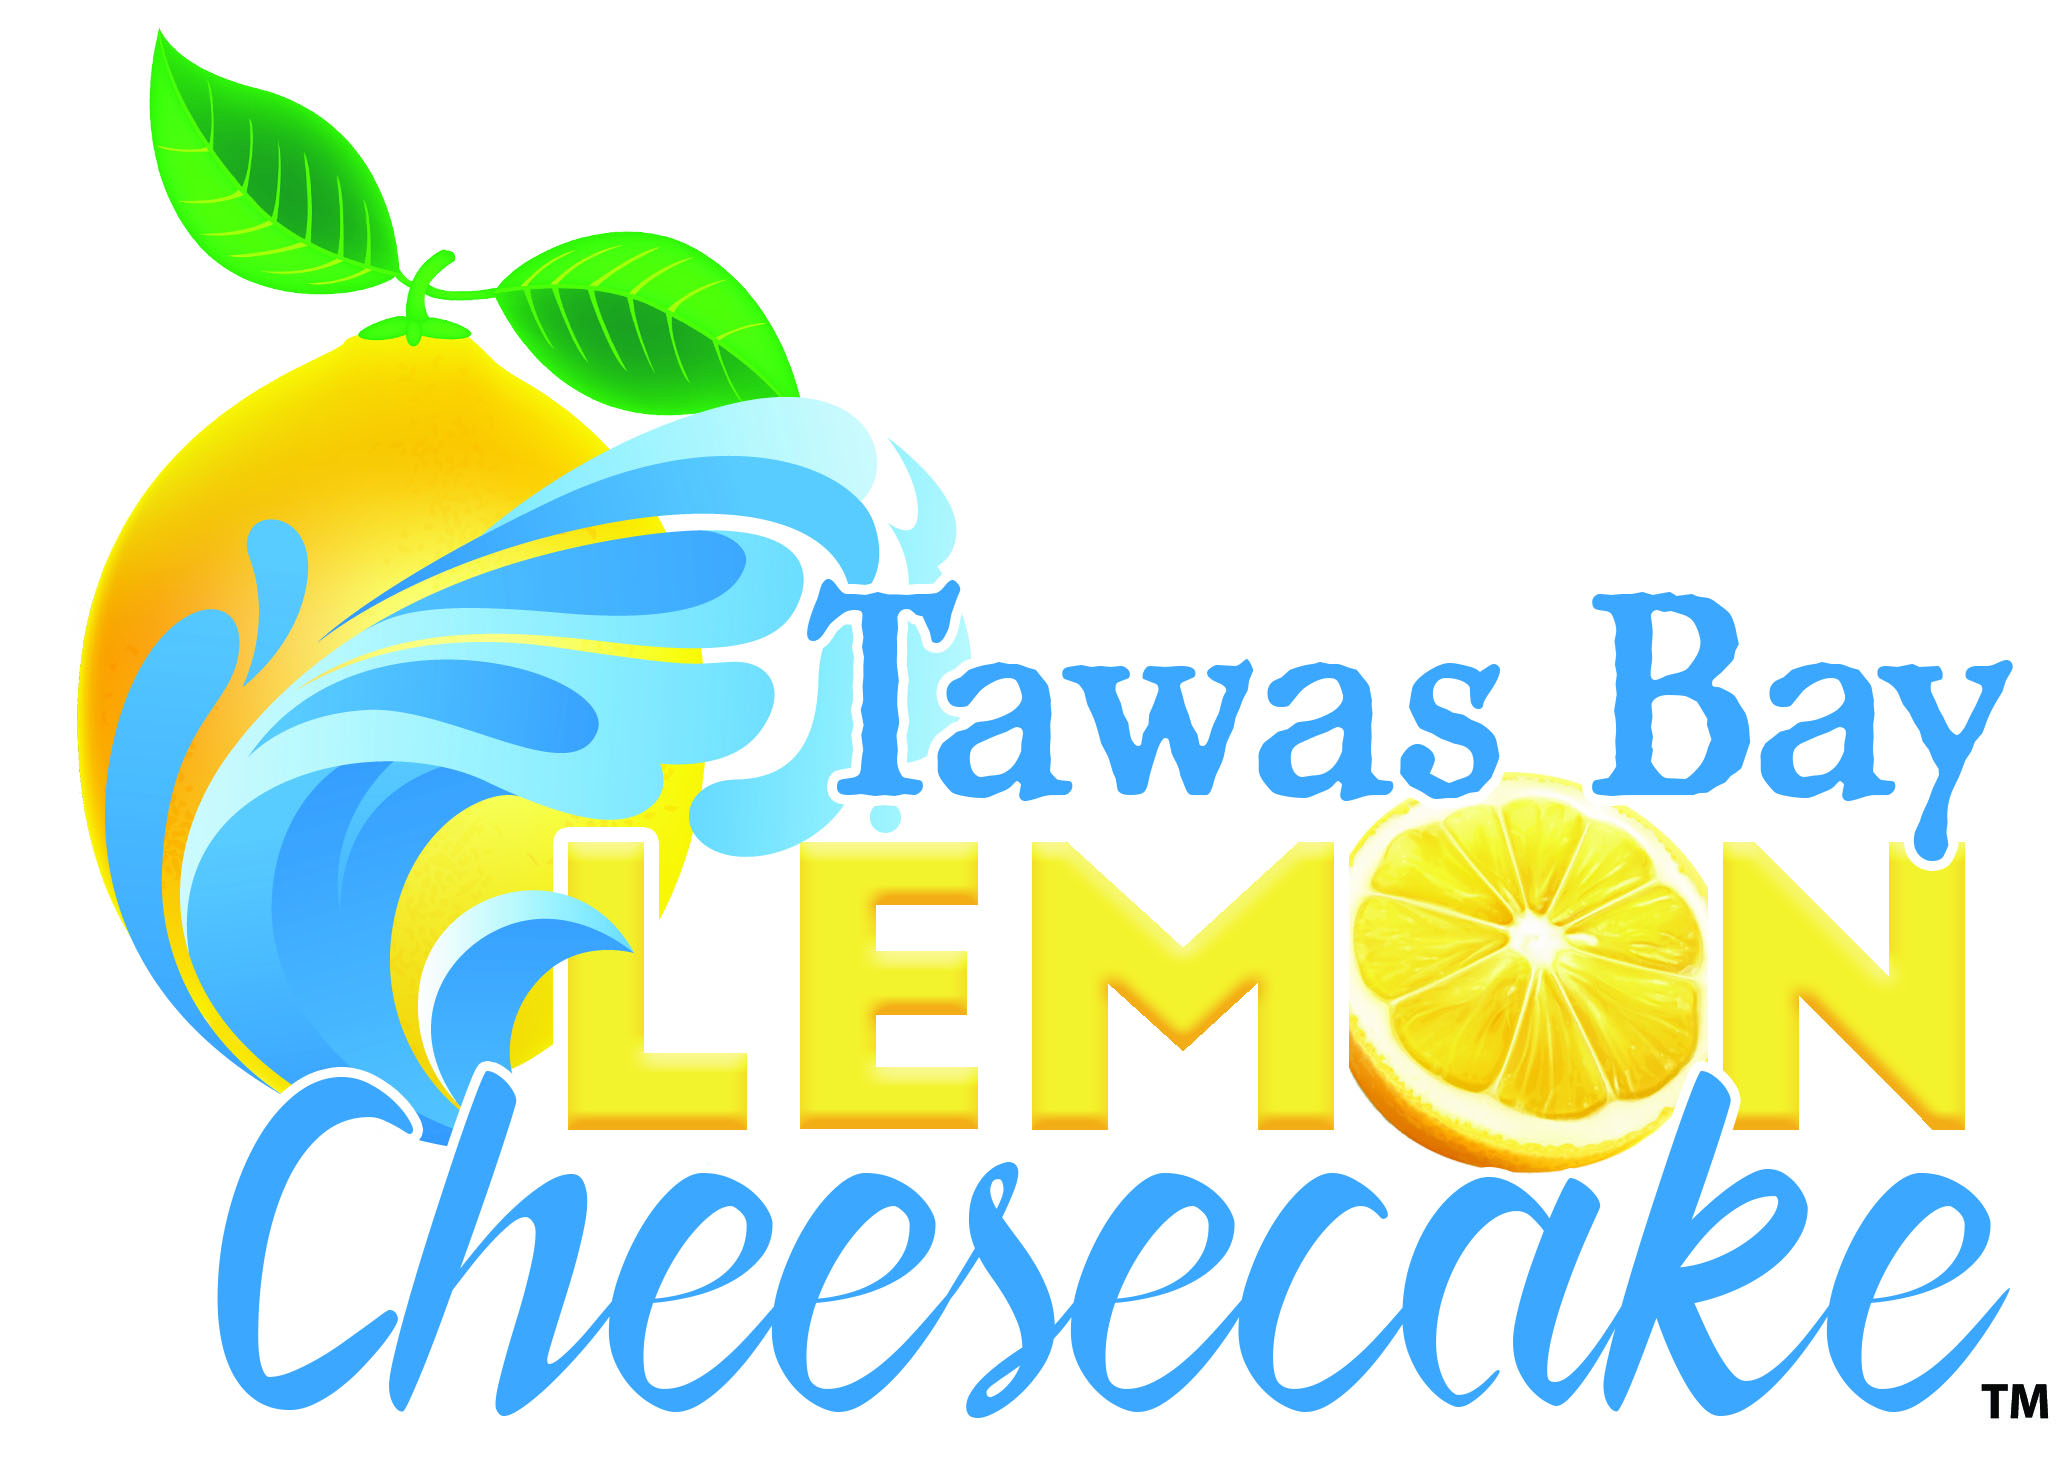 Tawas Bay Lemon Cheesecake